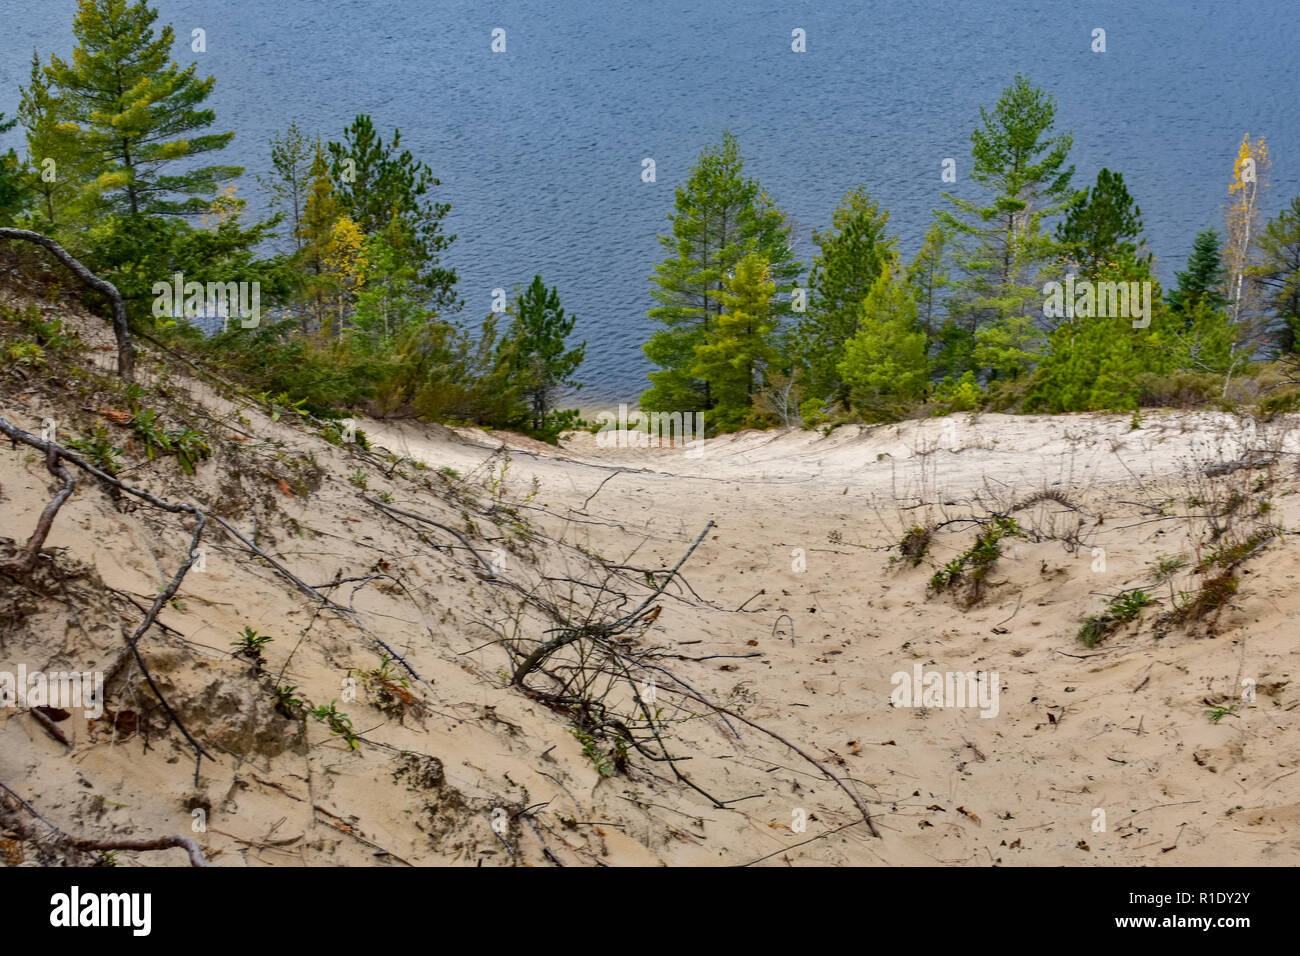 View from the top of a sand dune, with pine trees at the river/lake bank. Located in the Huron National Forest, Oscoda, Michigan. Stock Photo